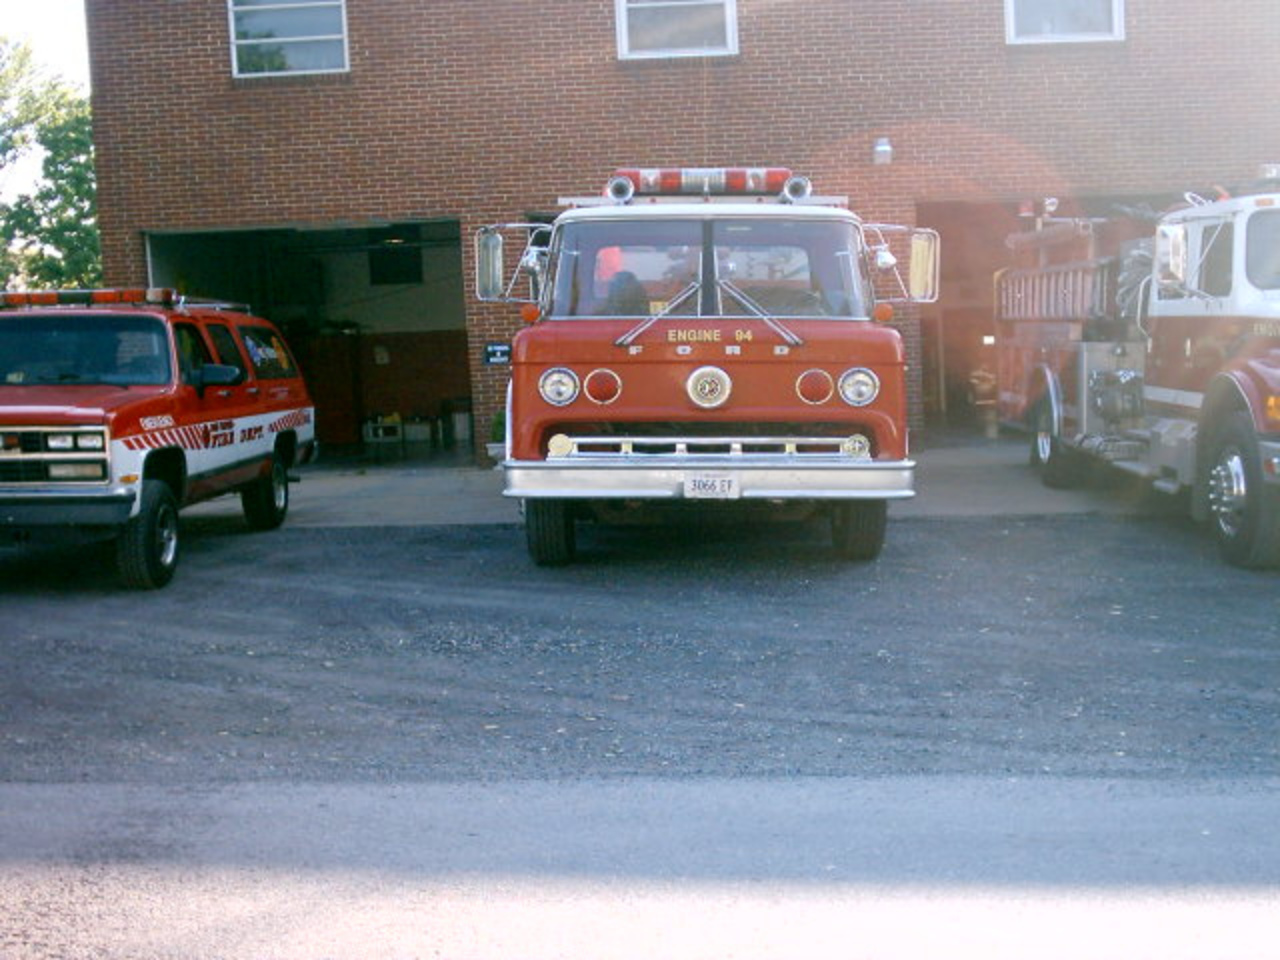 1975 Ford c 8000 seagrave | Flickr - Photo Sharing!